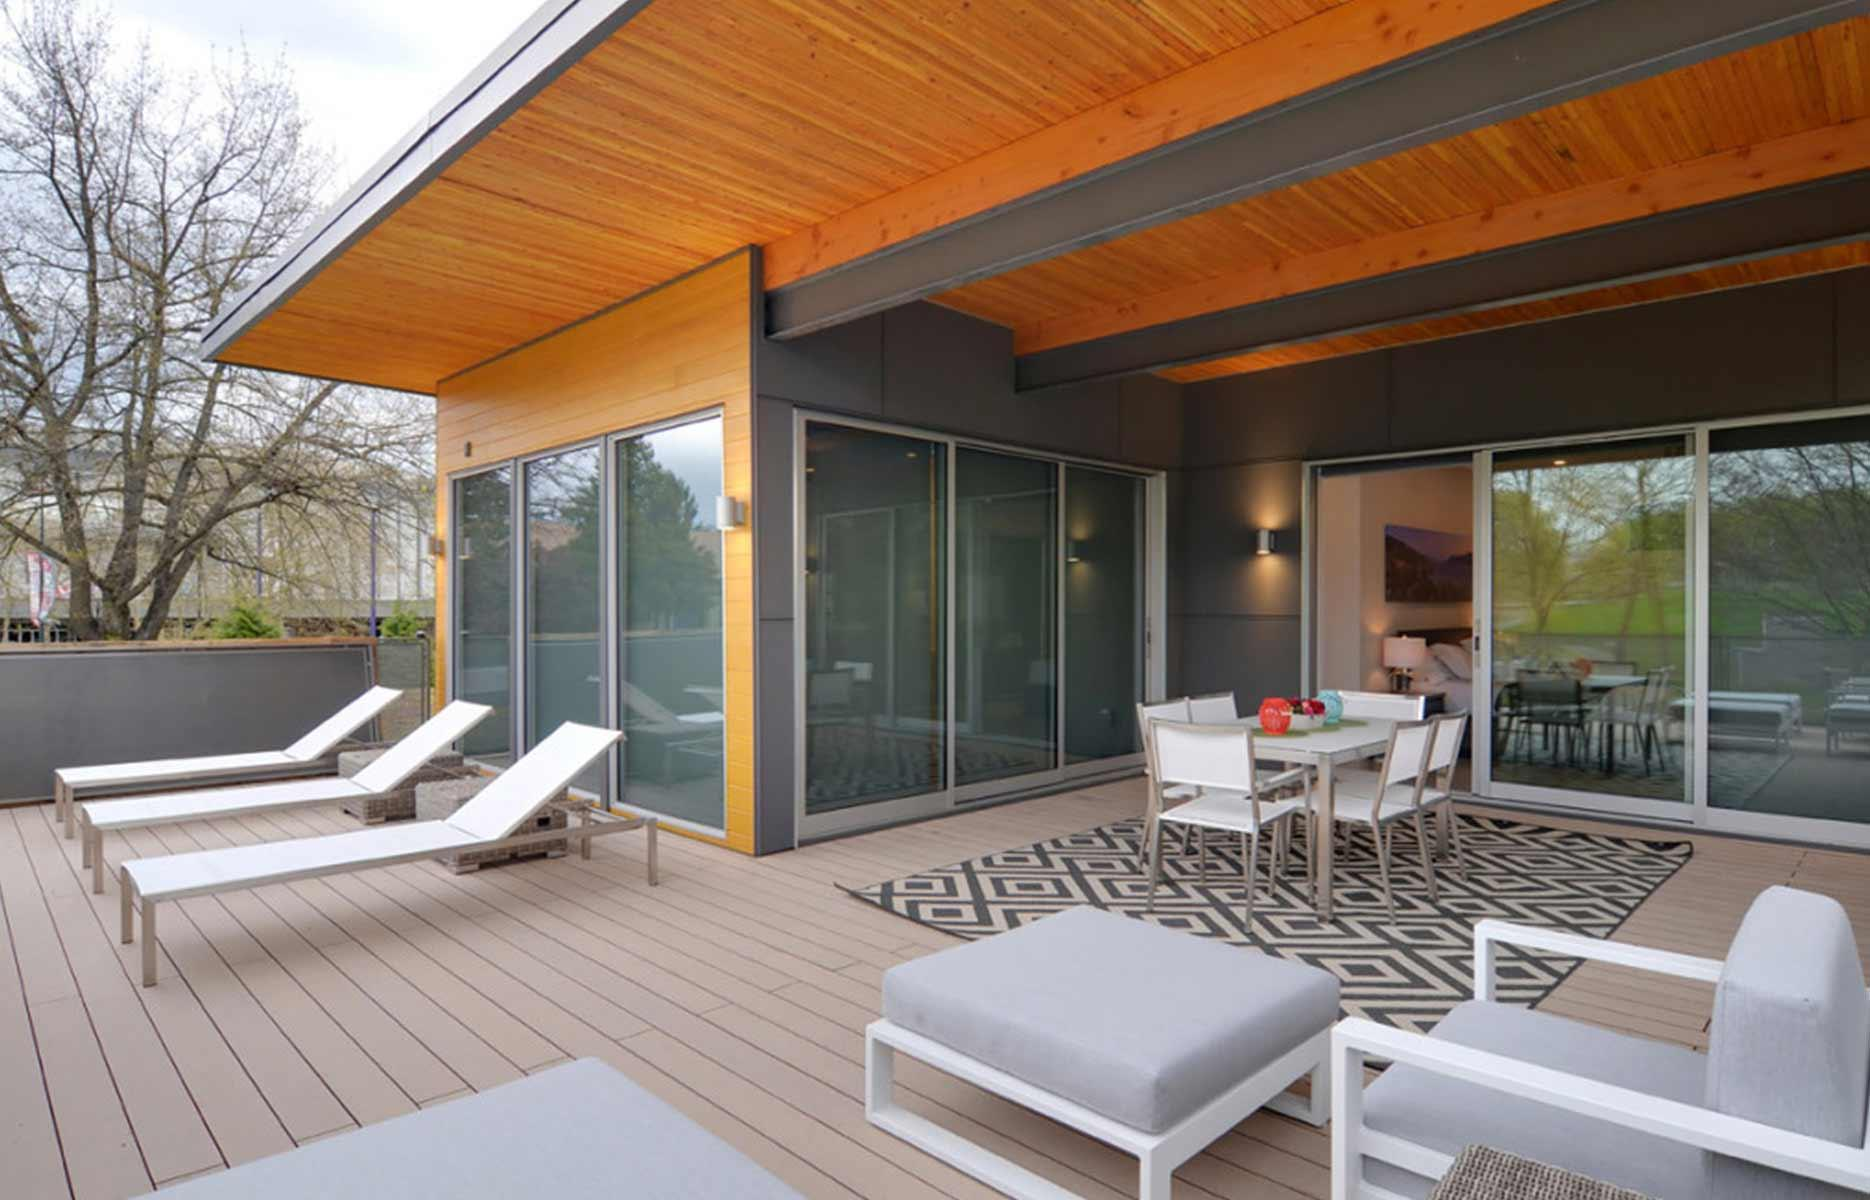 Western Window Systems Products Showcased in 2015 PNE Prize Home